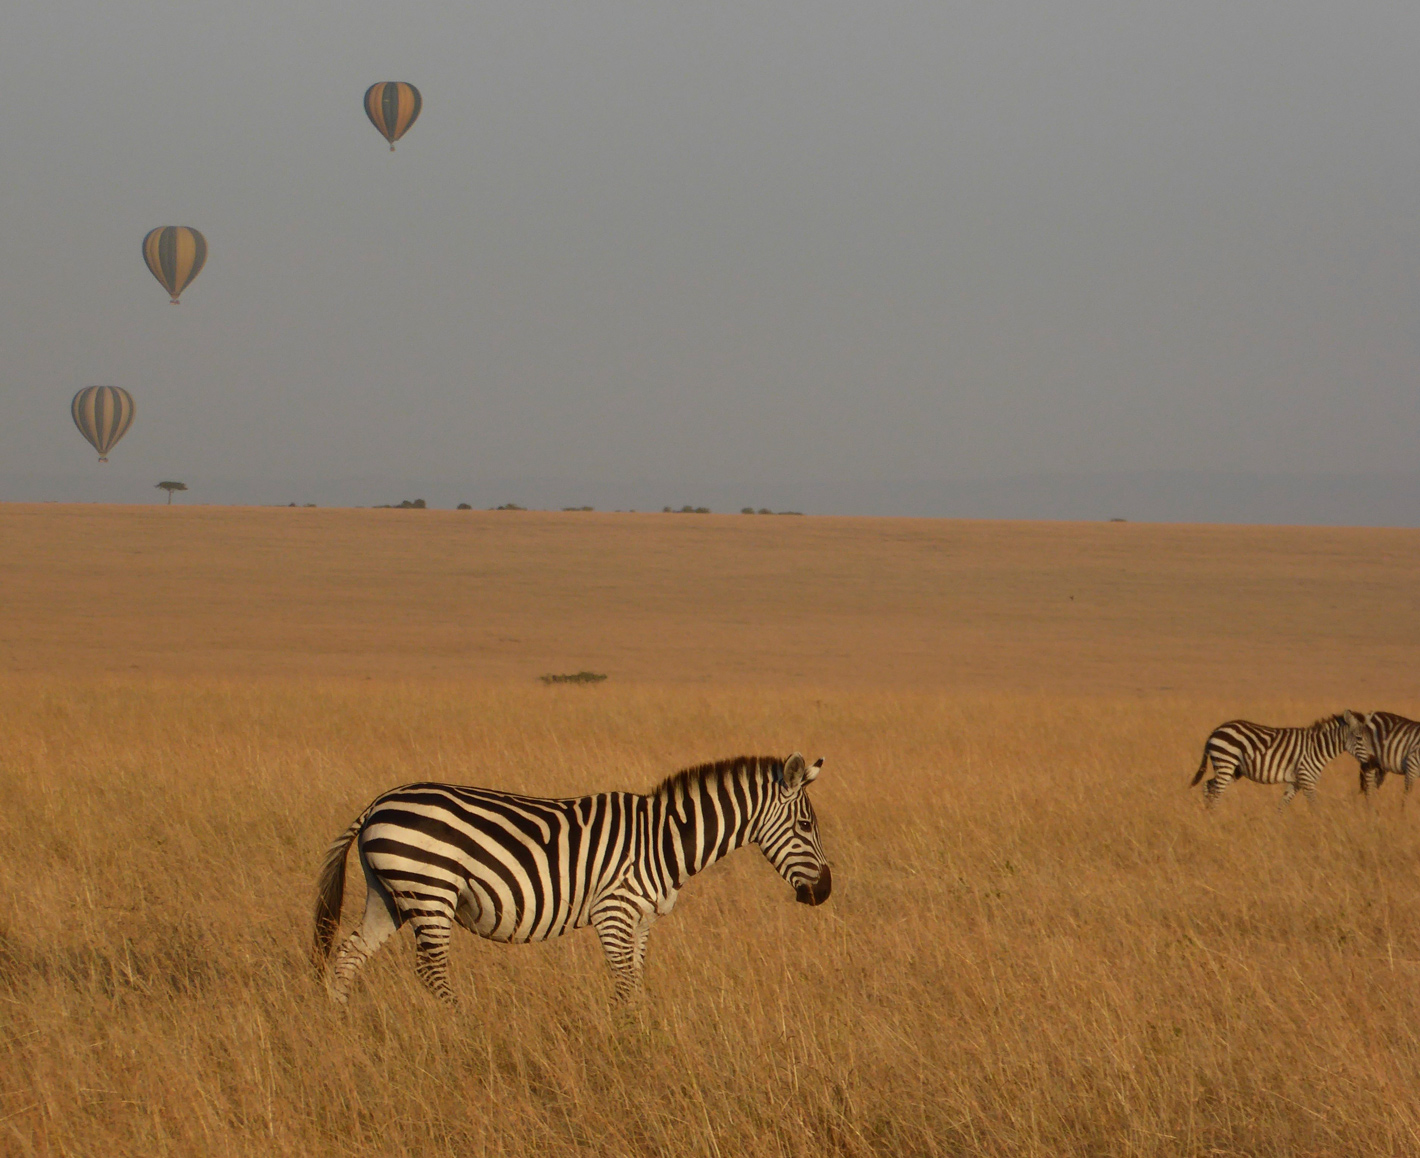 Zebras with three hot air balloons in background